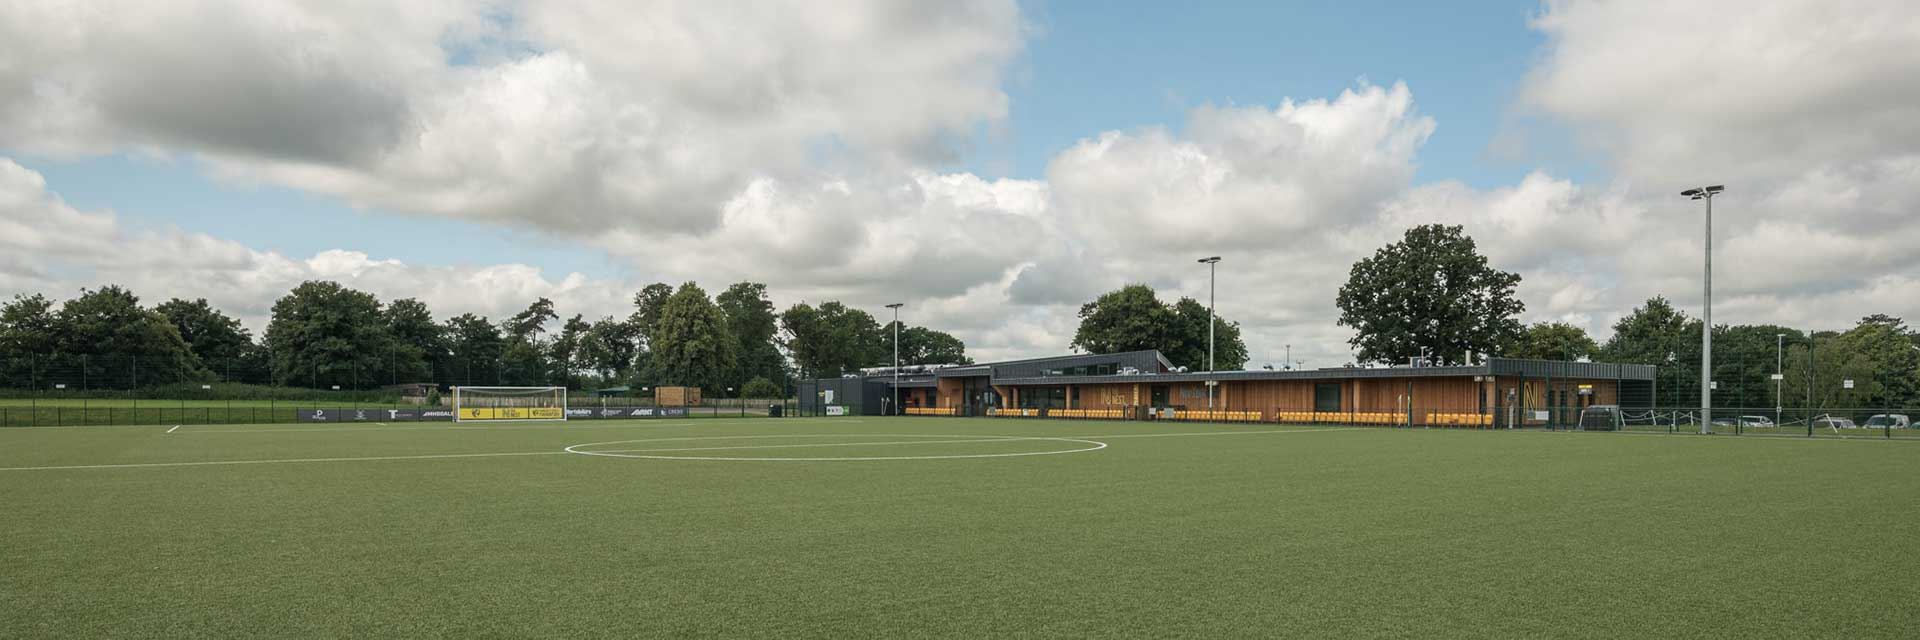 The Nest Hub building from the 3G pitch